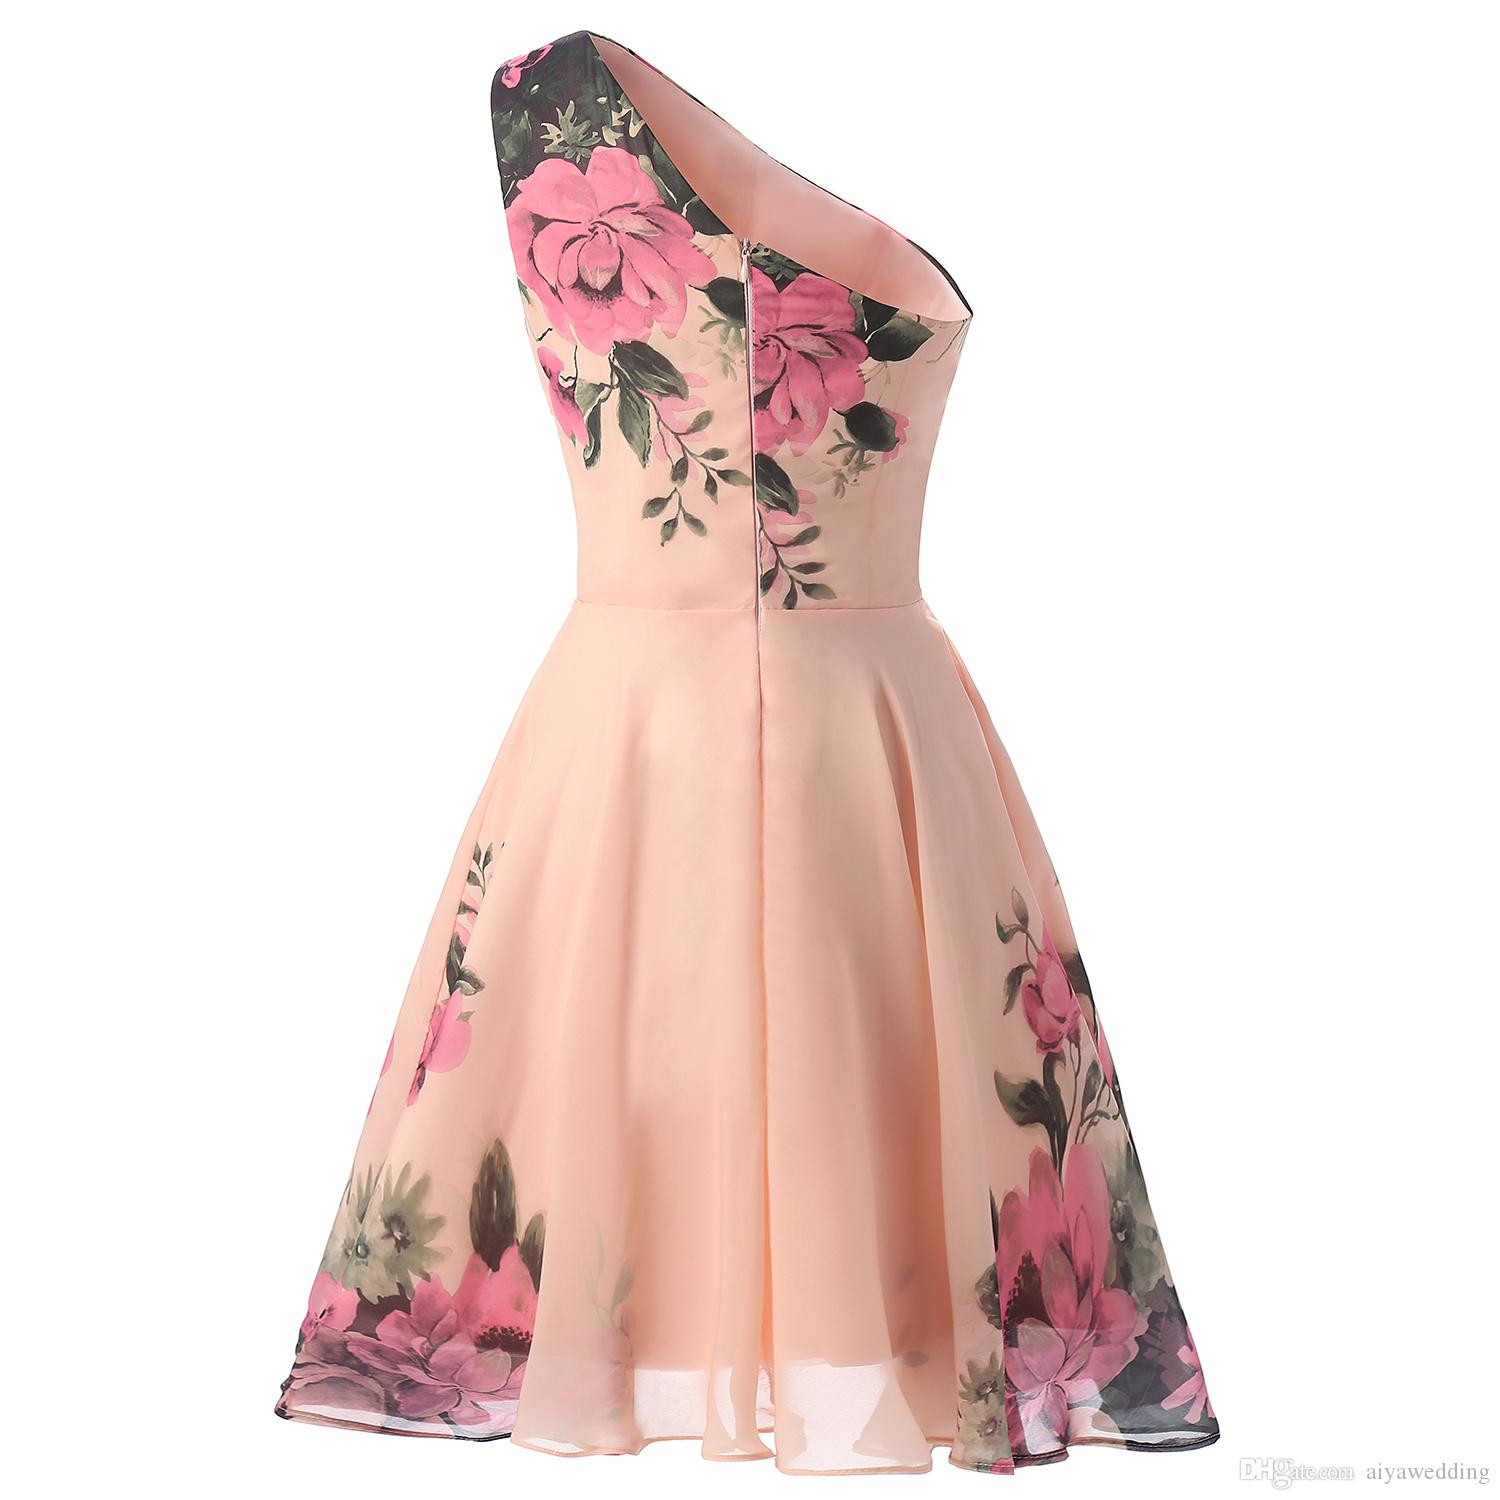 2019 One Shoulder Homecoming Dresses Printed Flower A-Line Formal Party Dresses Evening Gowns For Sweet 15/16